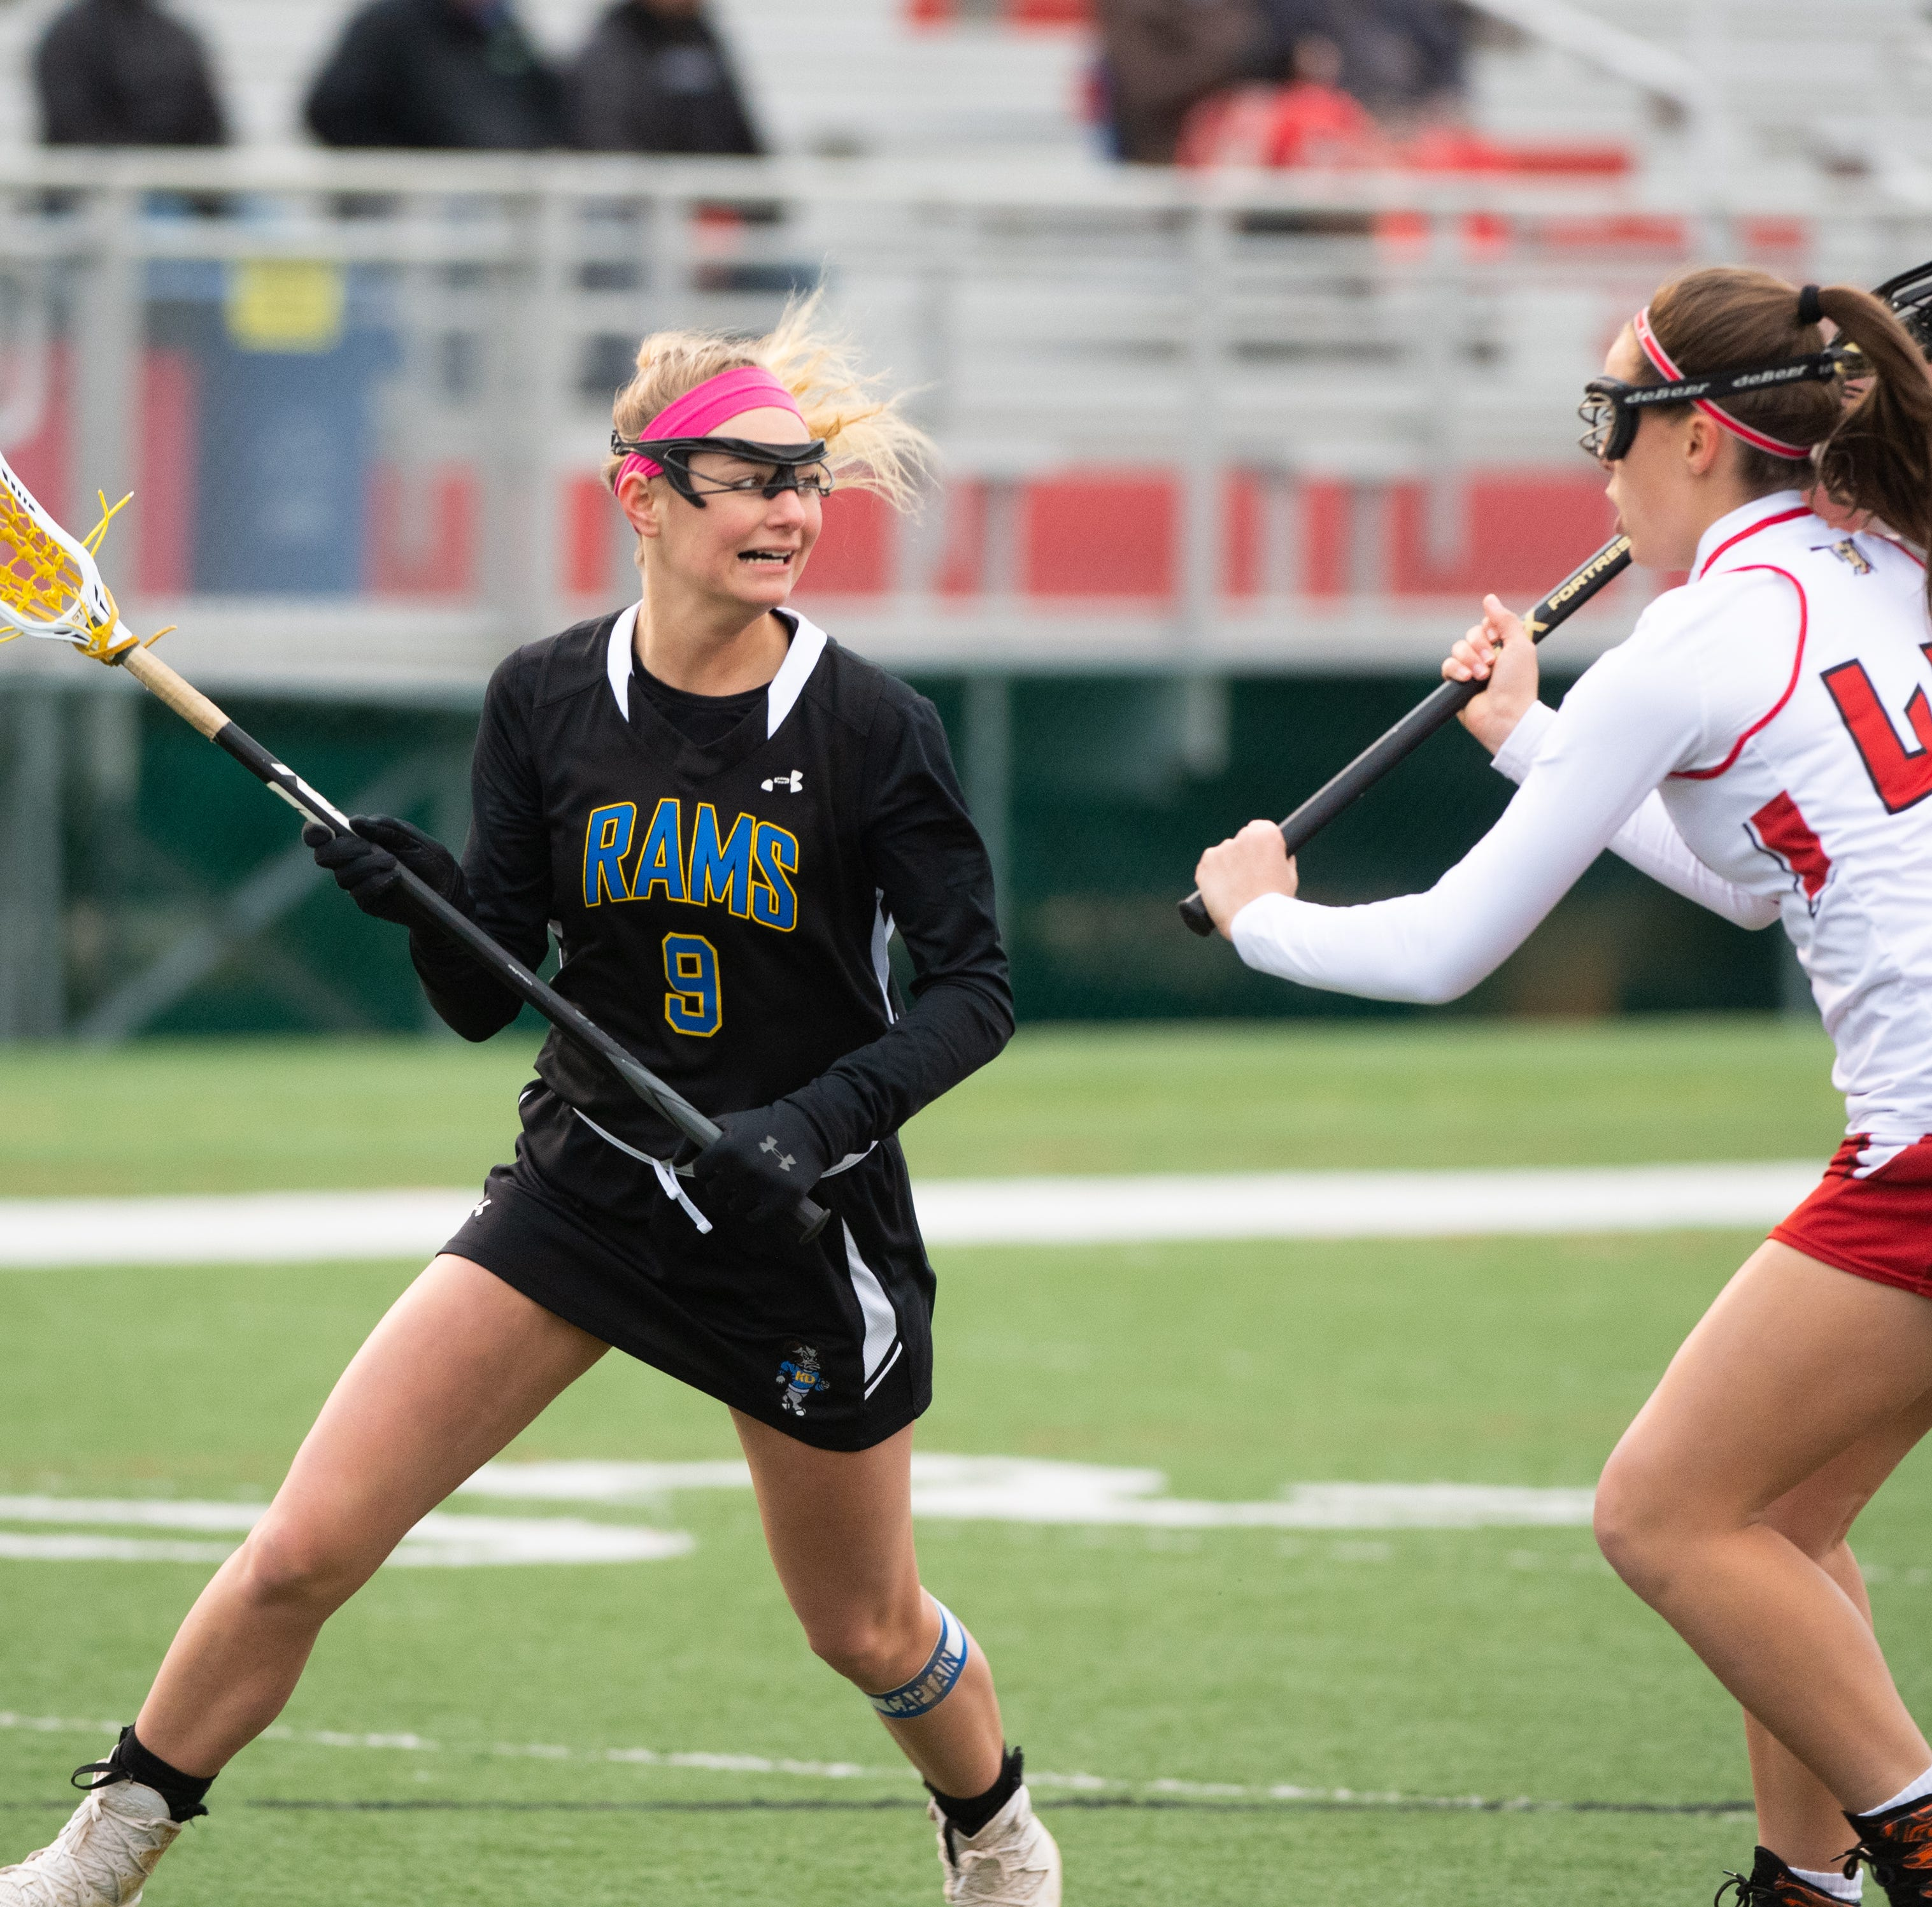 Megan Halczuk (9) looks to get past the defense during the girls' lacrosse game between Susquehannock and Kennard-Dale, April 2, 2019 at Susquehannock High School. The Rams defeated the Warriors 17 to 2.